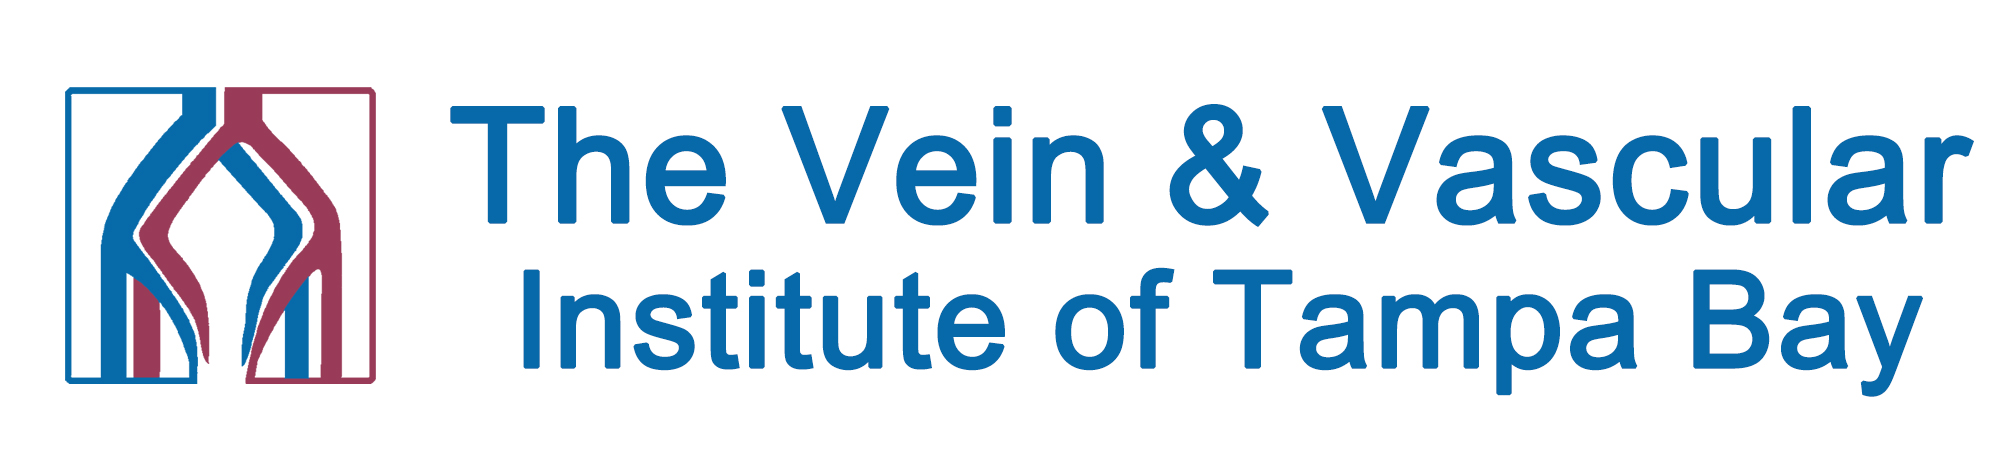 The Vein and Vascular Institute of Tampa Bay